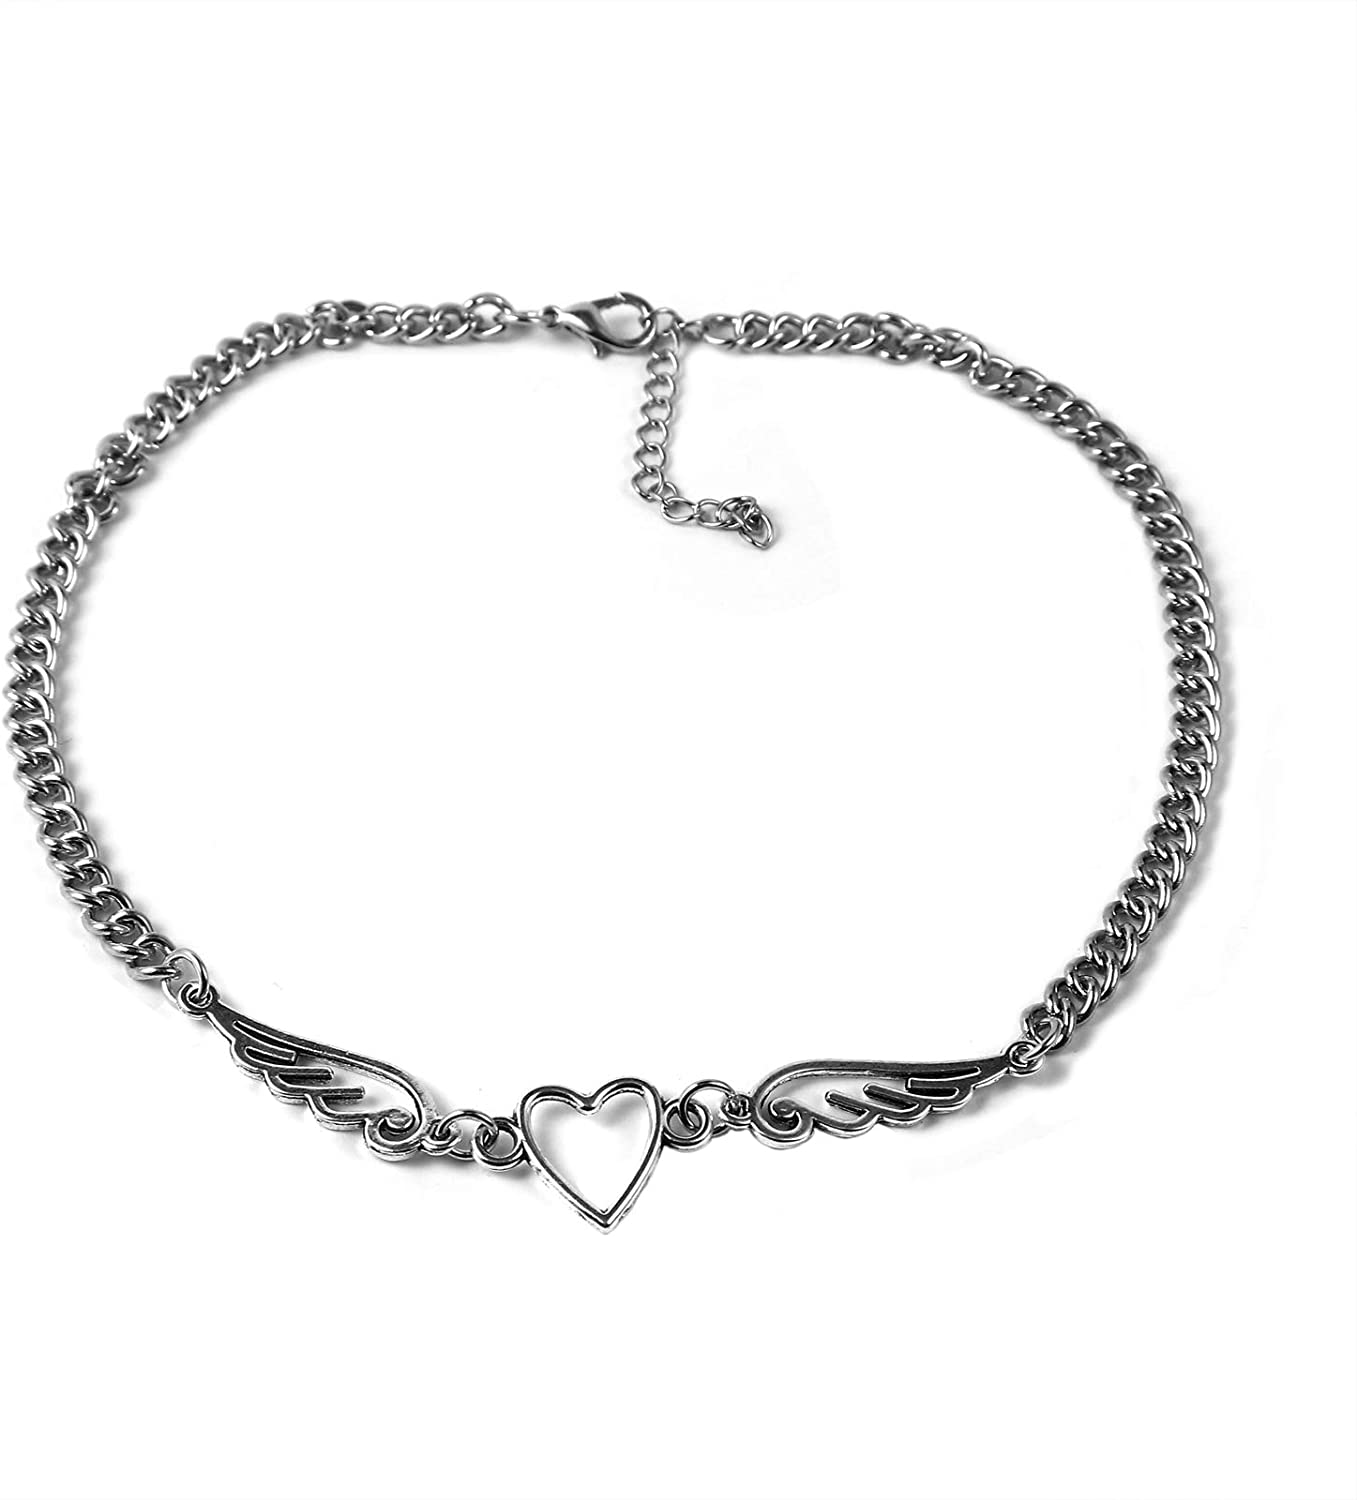 Mountainer Punk Cool Necklace Simple Geometric Metal Heart Angel Wings Choker Statement Clavicle Necklace for Women Girls Party Jewerly Gift